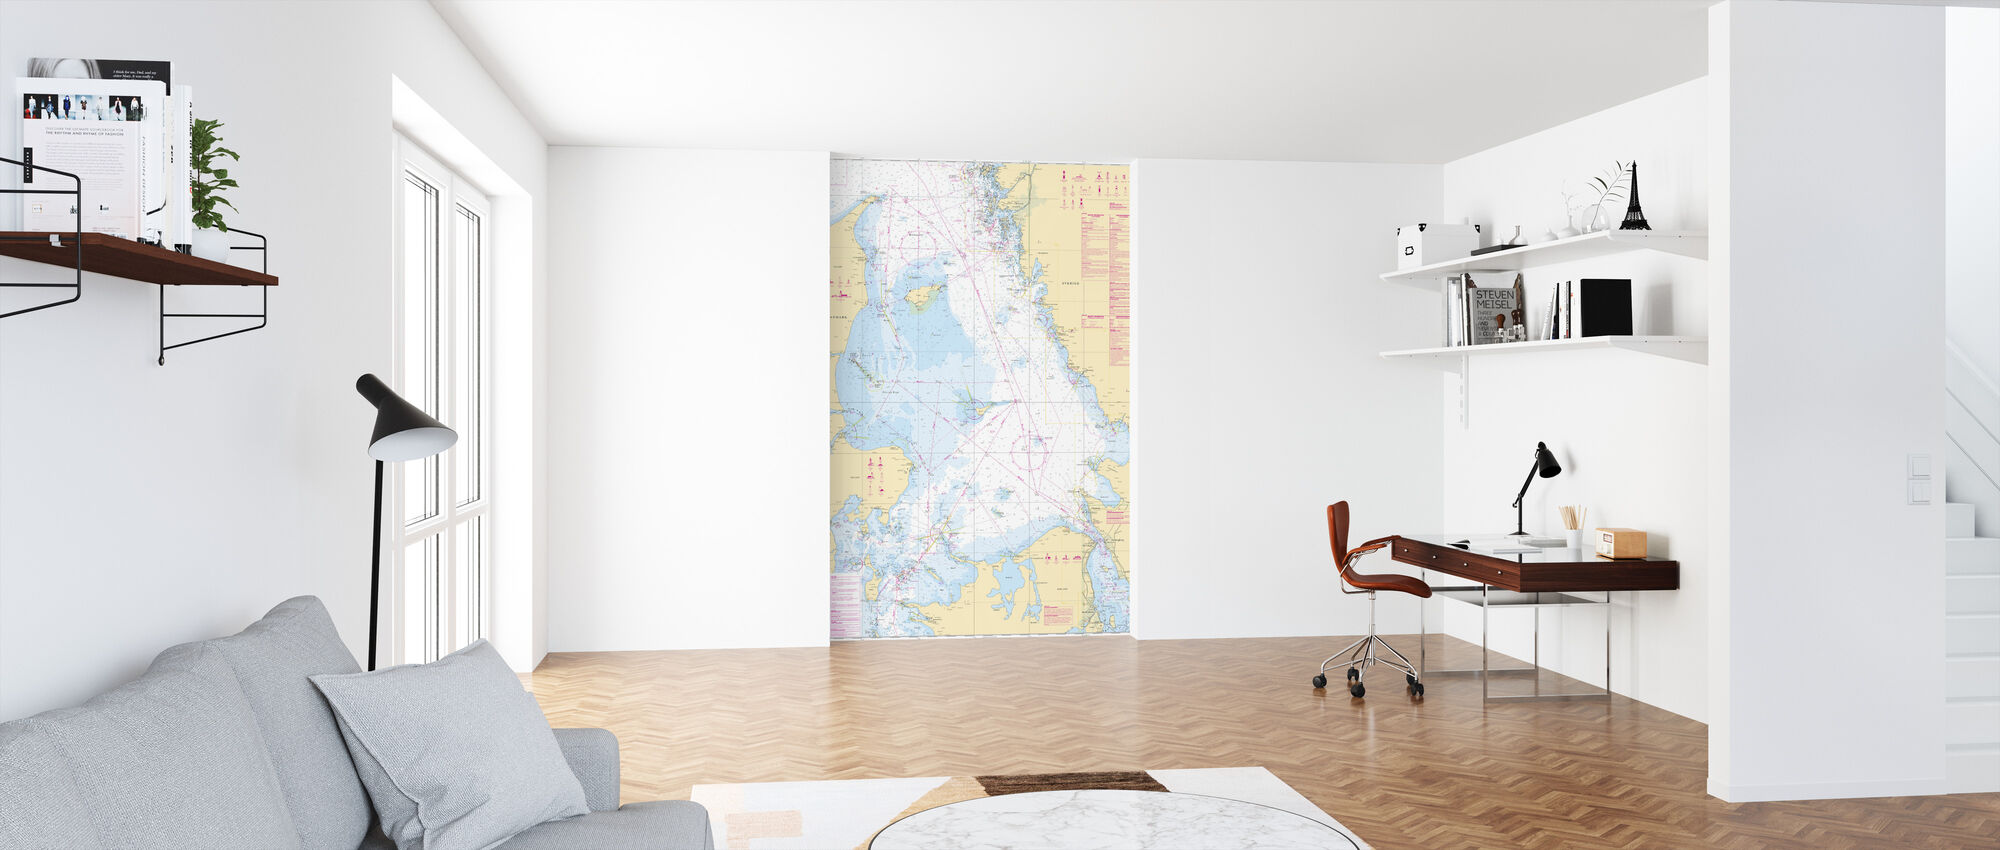 Sea Chart 92 - Kattegatt - Wallpaper - Office